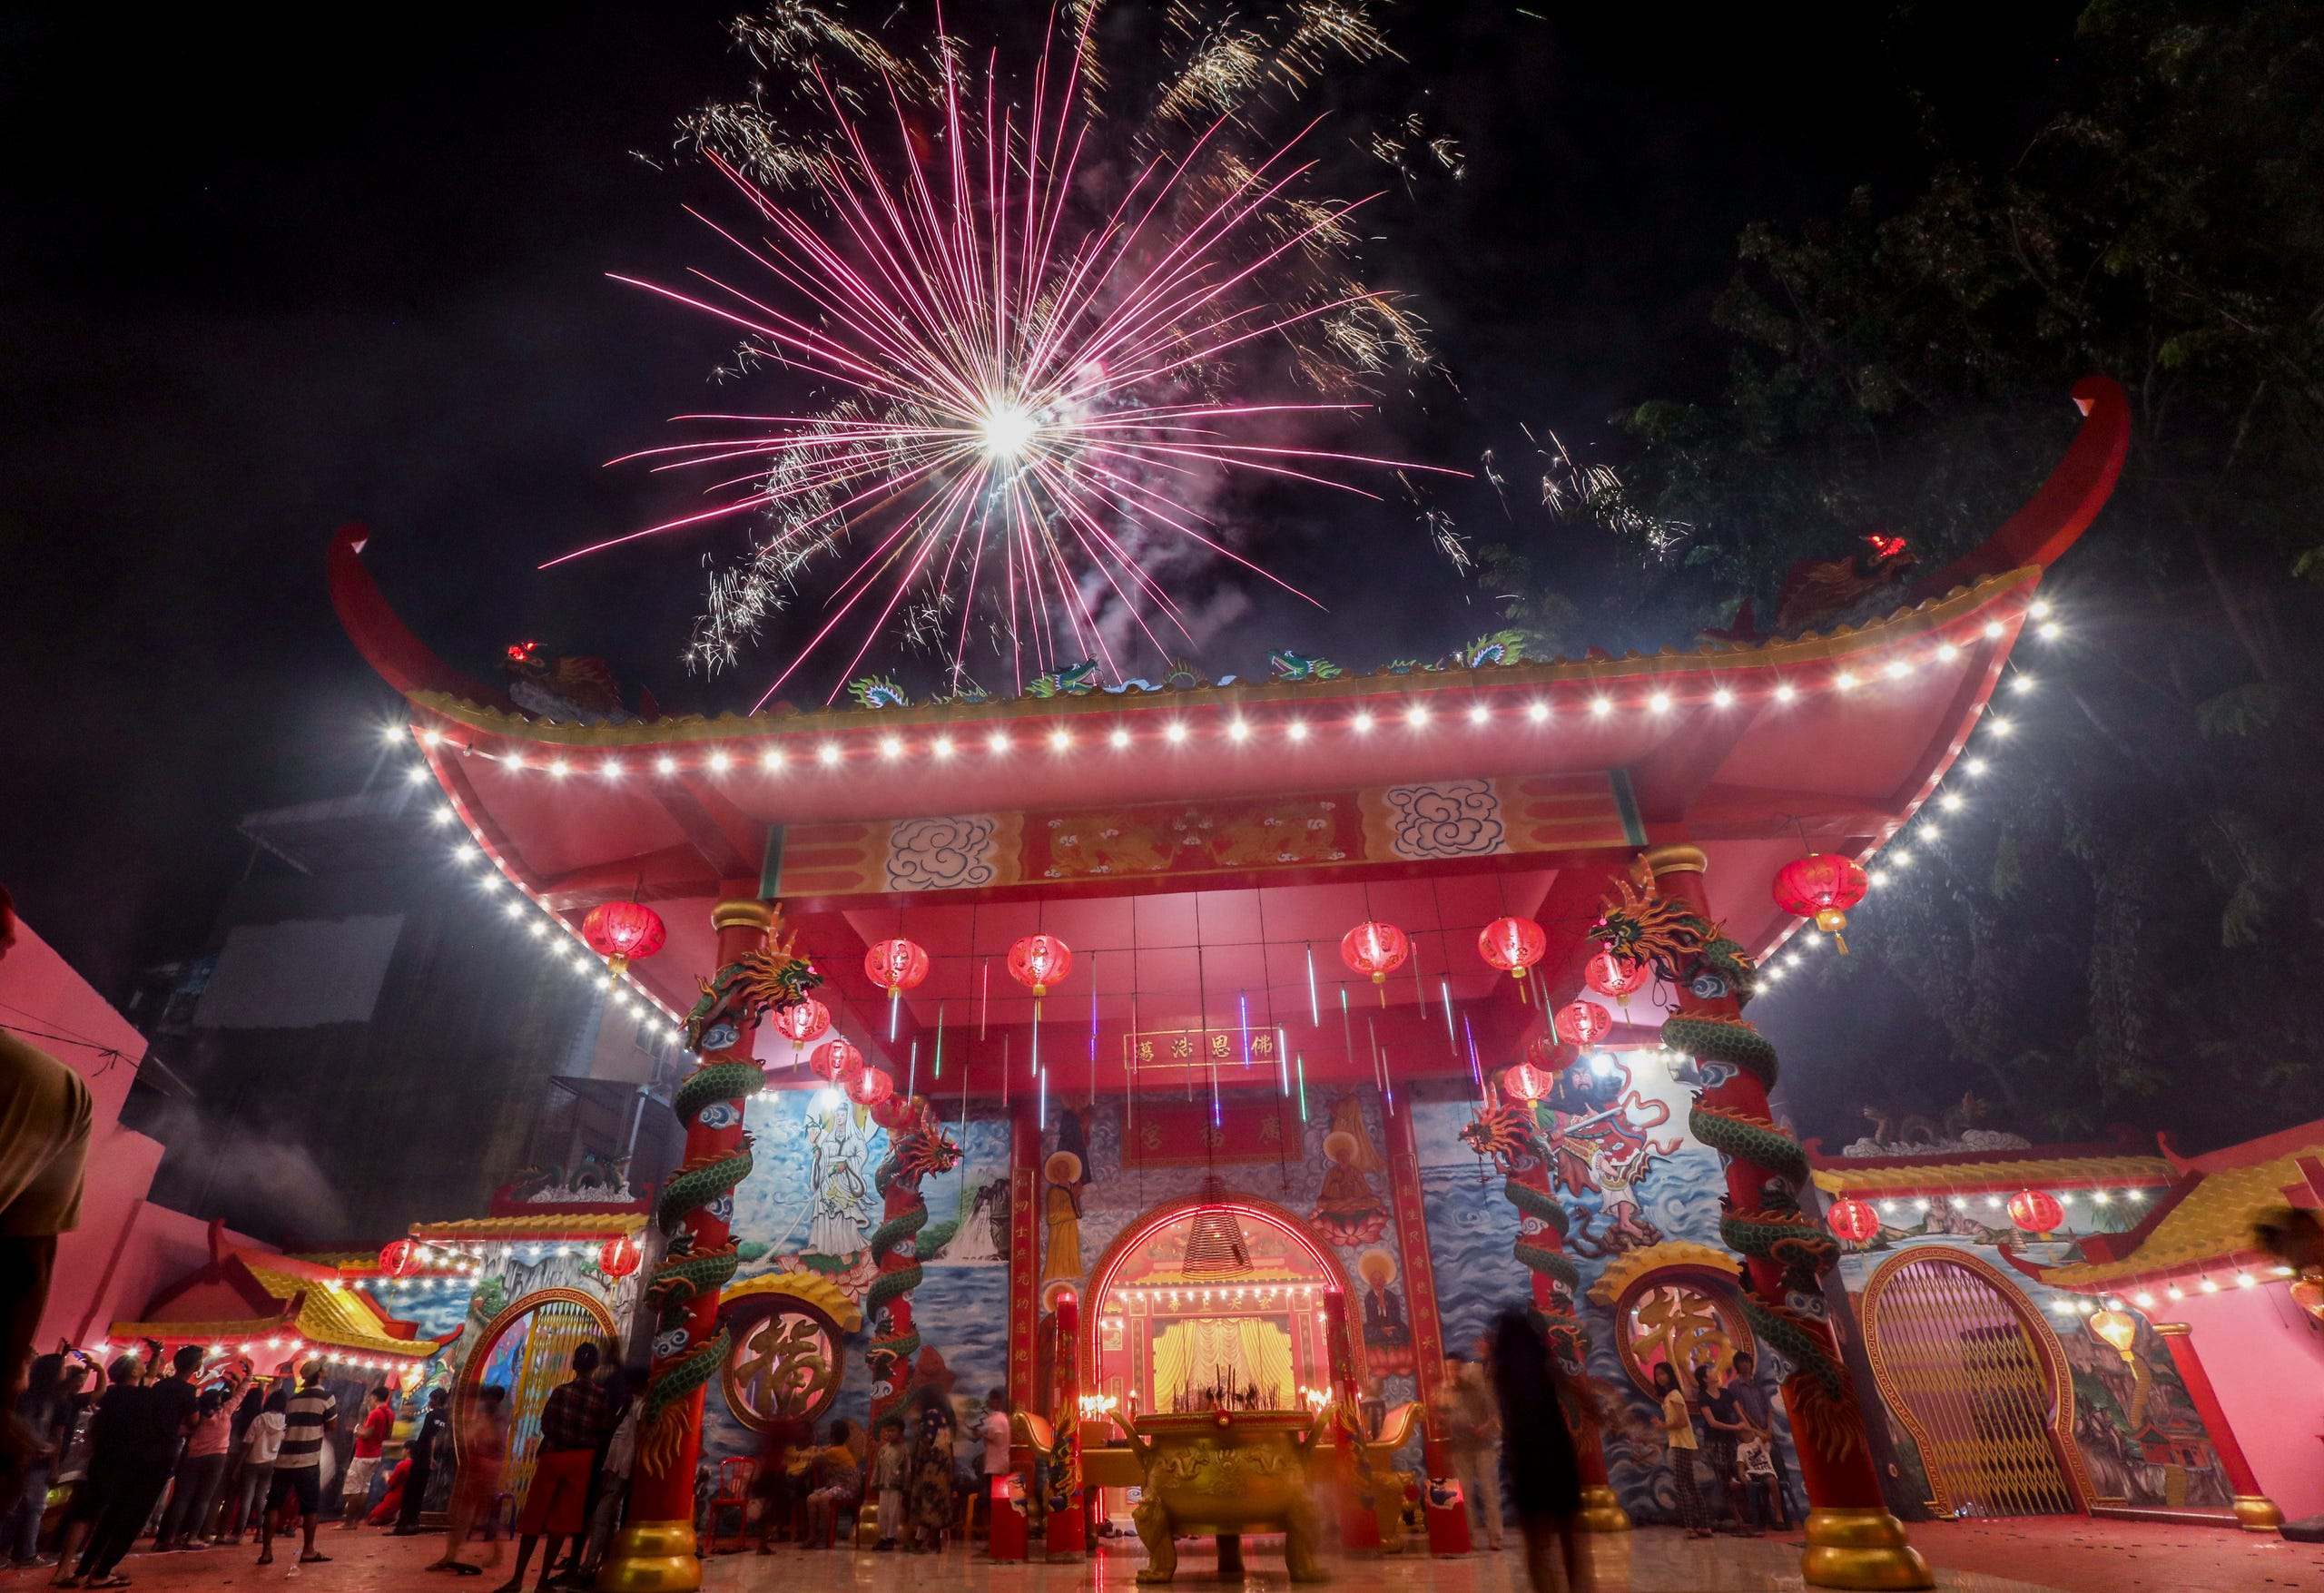 Chinese Lunar New Year celebrations from around the world